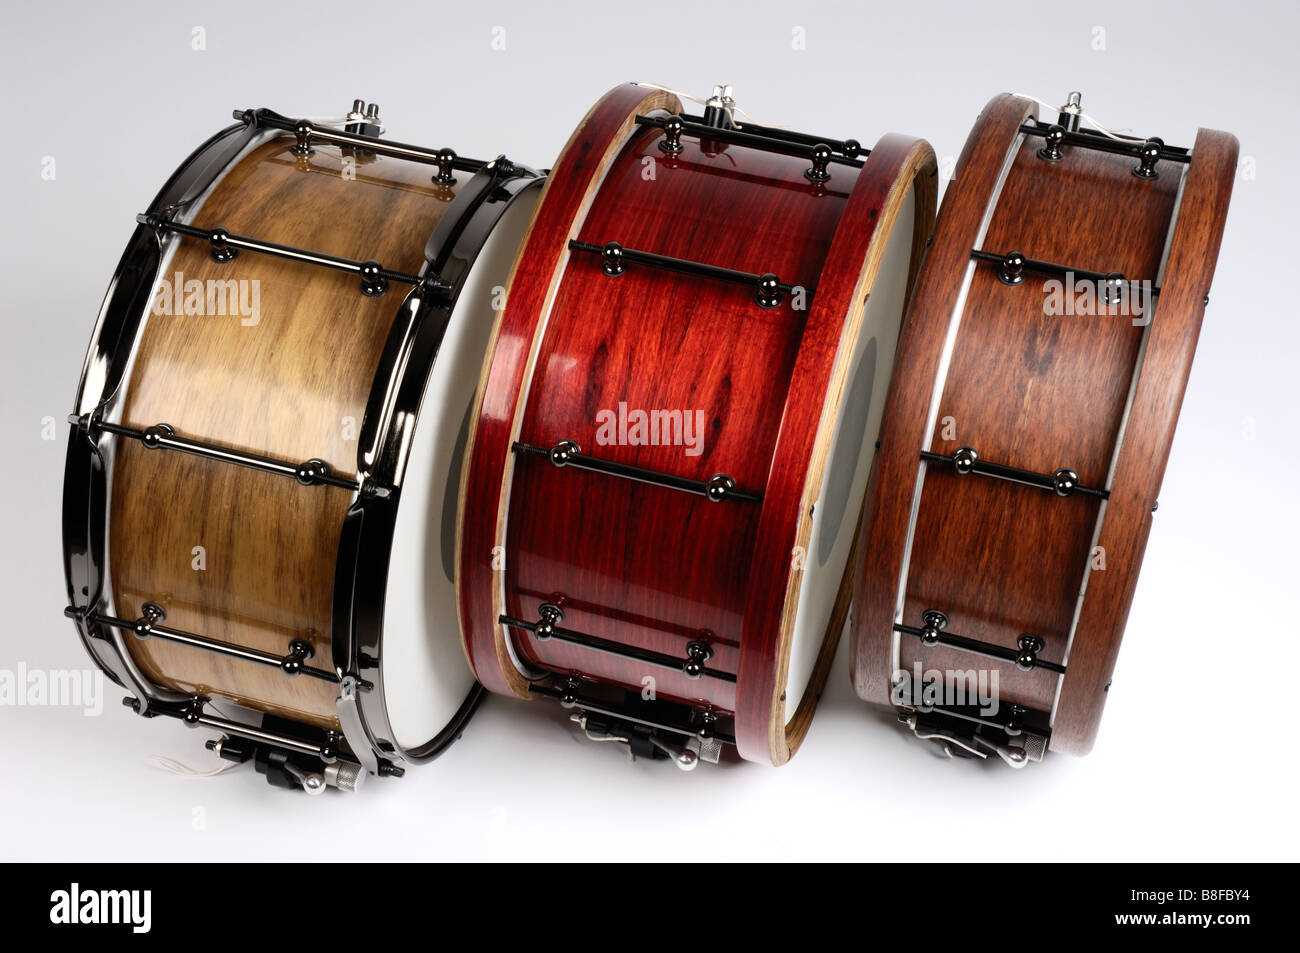 Hand made snare drums made with Australian timber veneer by